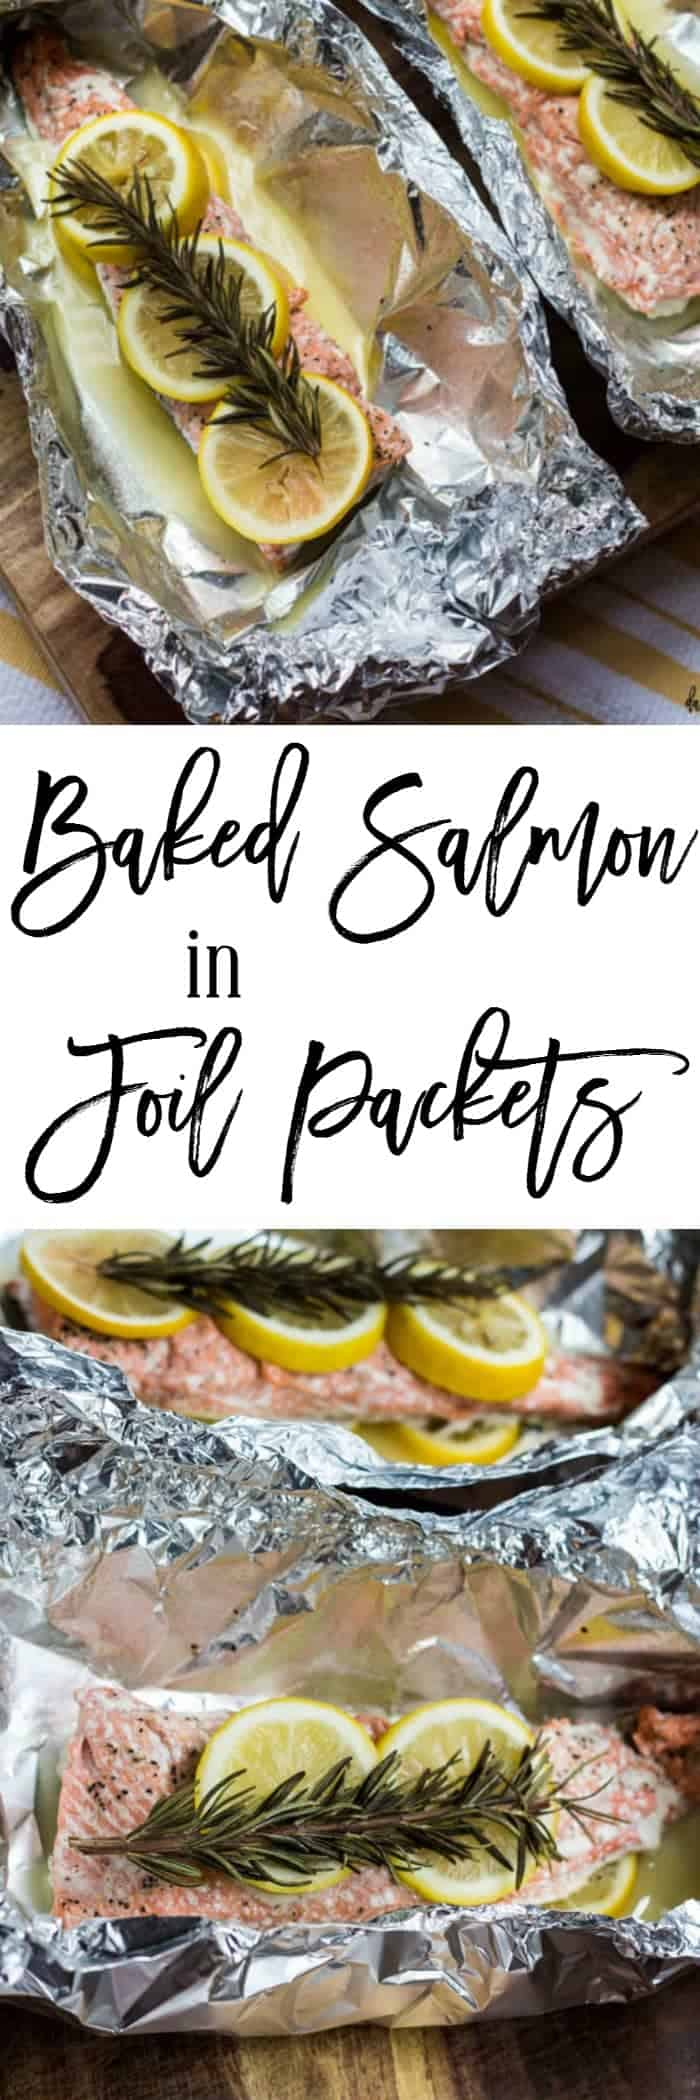 Baked salmon in foil packets dash of herbs for Fish foil packets oven